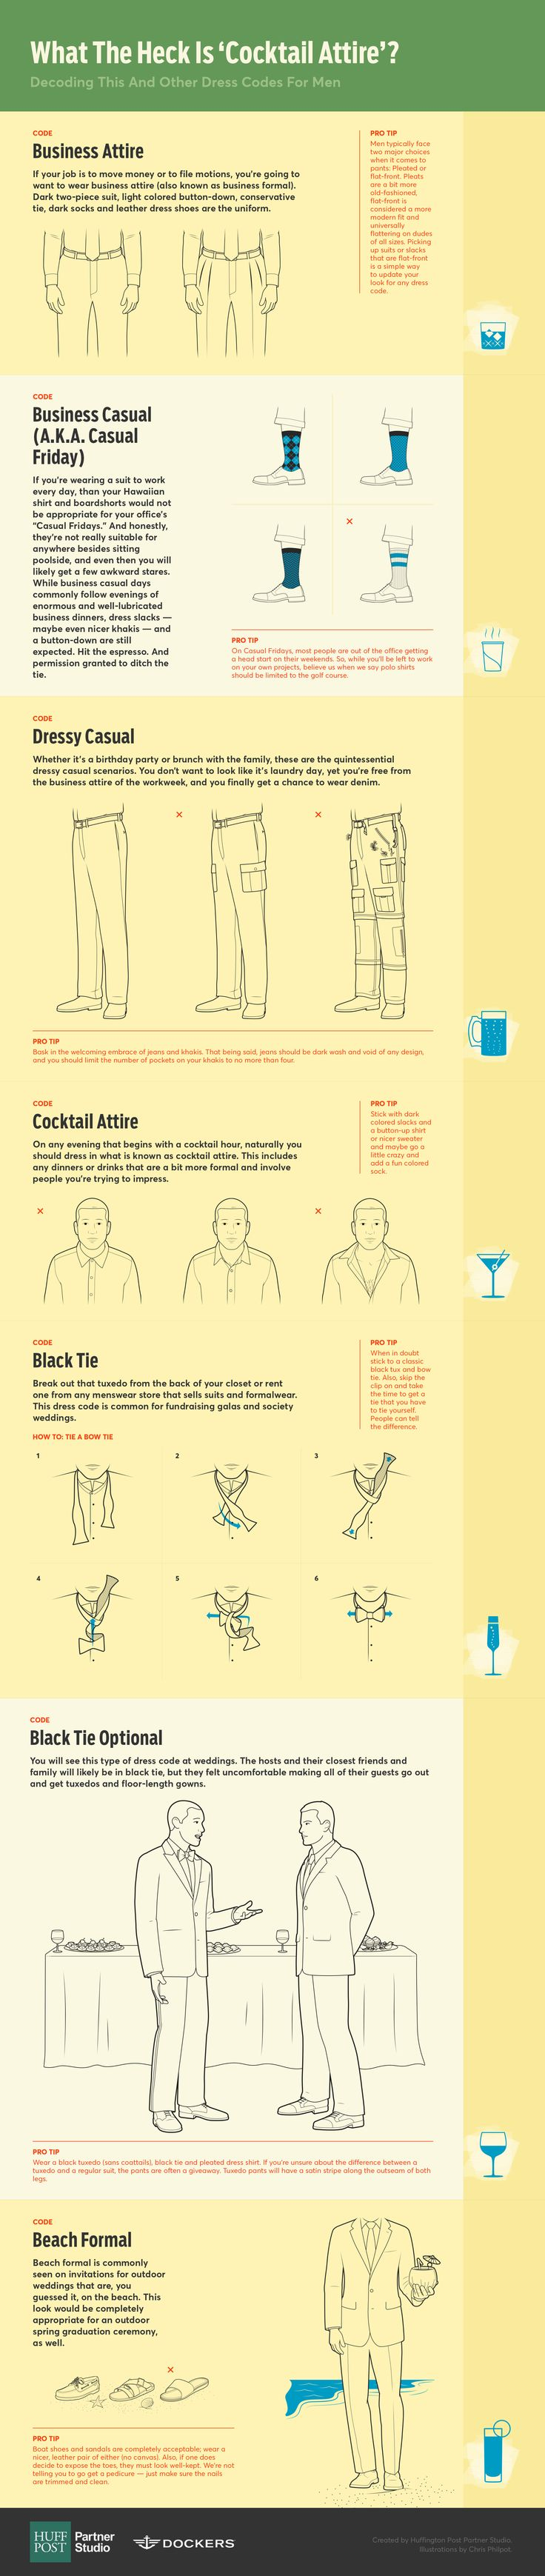 What The Heck Is 'Cocktail Attire'? Decoding This And Other Dress Codes For Men | Huffington Post